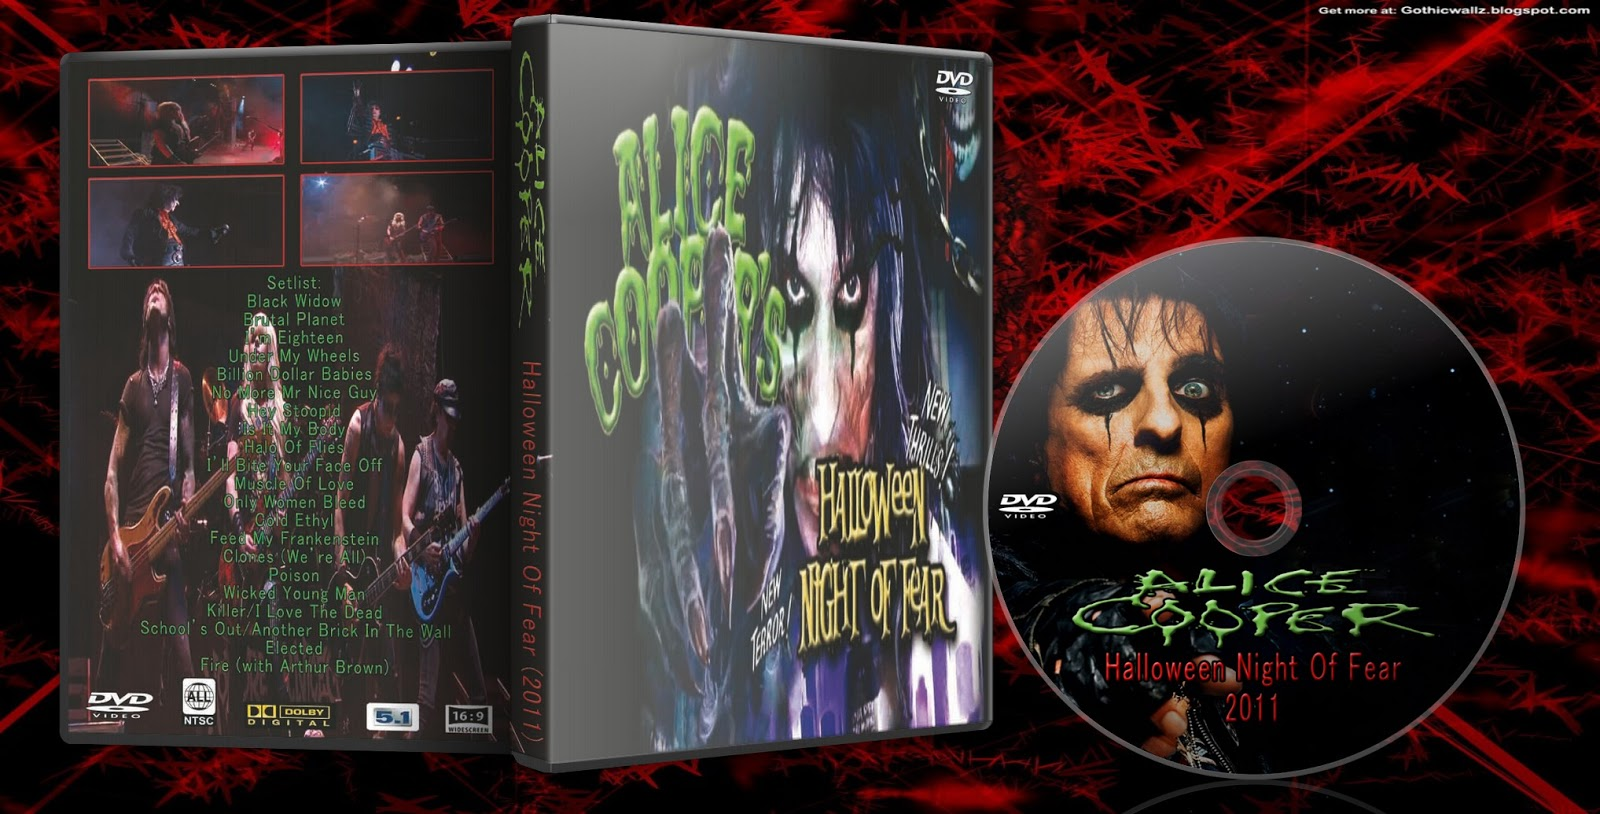 alice coopers halloween night of fear 2011 hdtv to dvd